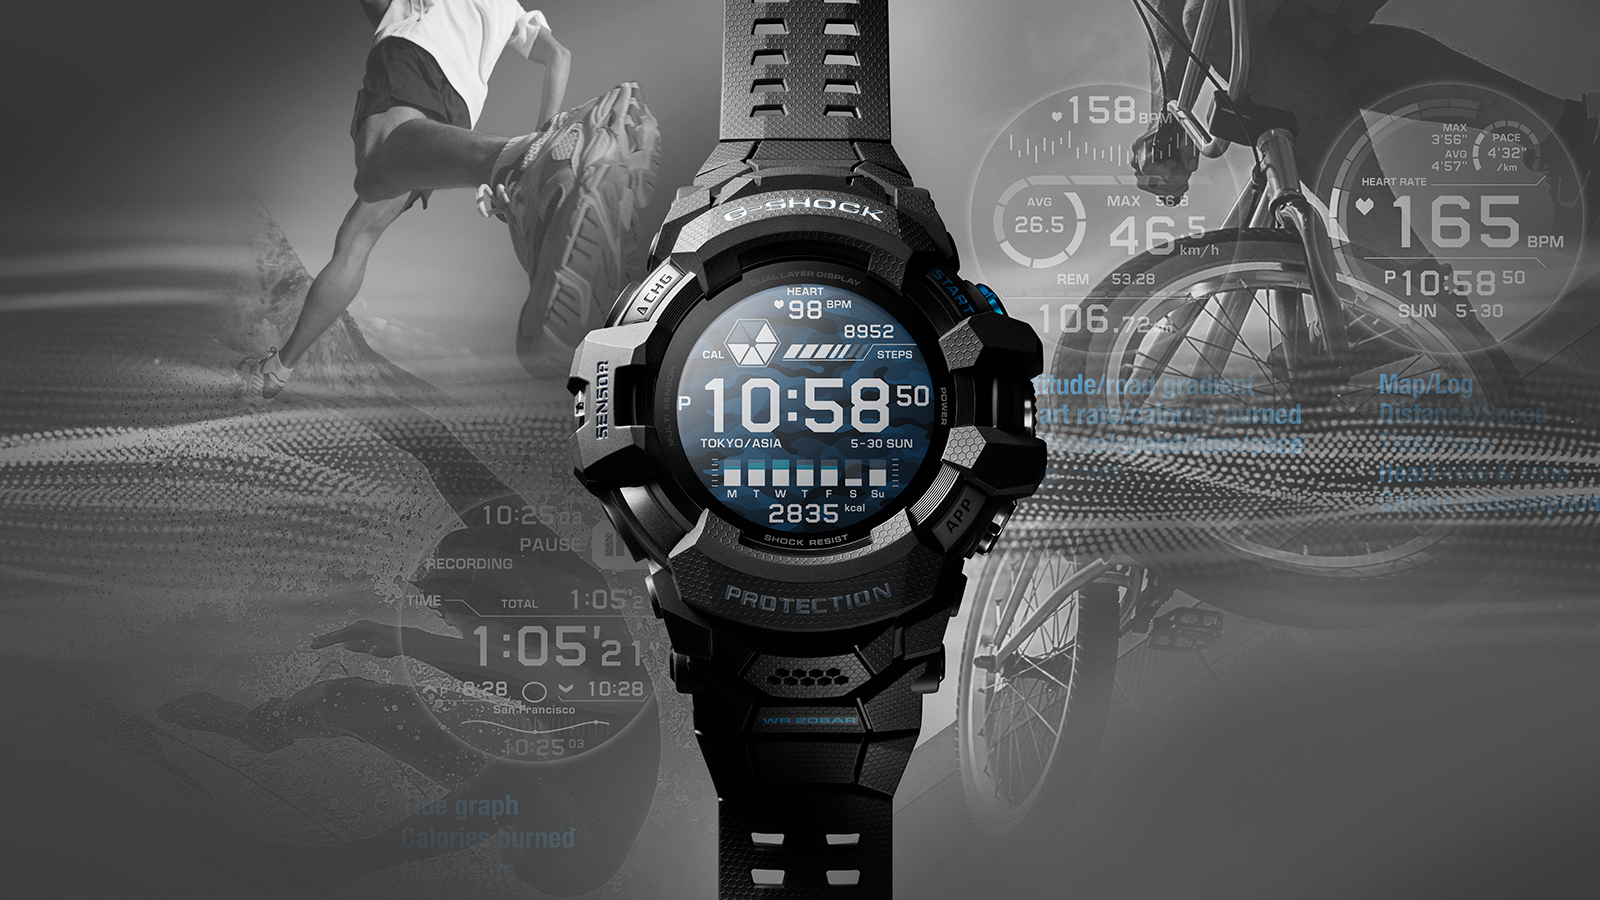 Casio G-shock GSW-H1000 smartwatch